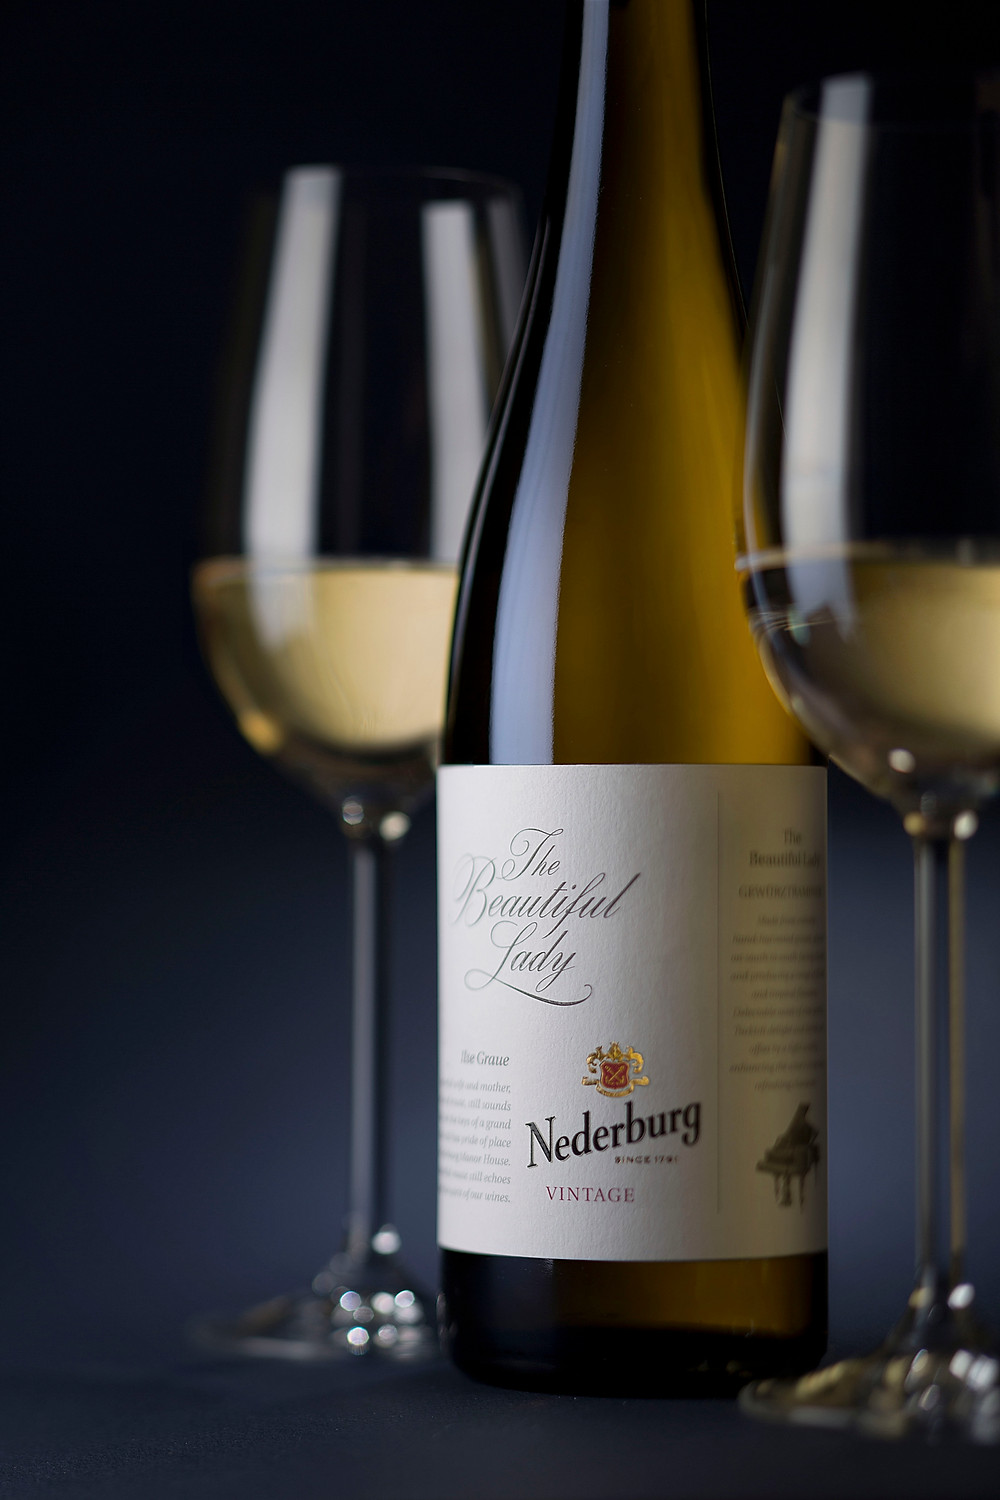 The Beauty Lady from Nederburg wine estate in south africa